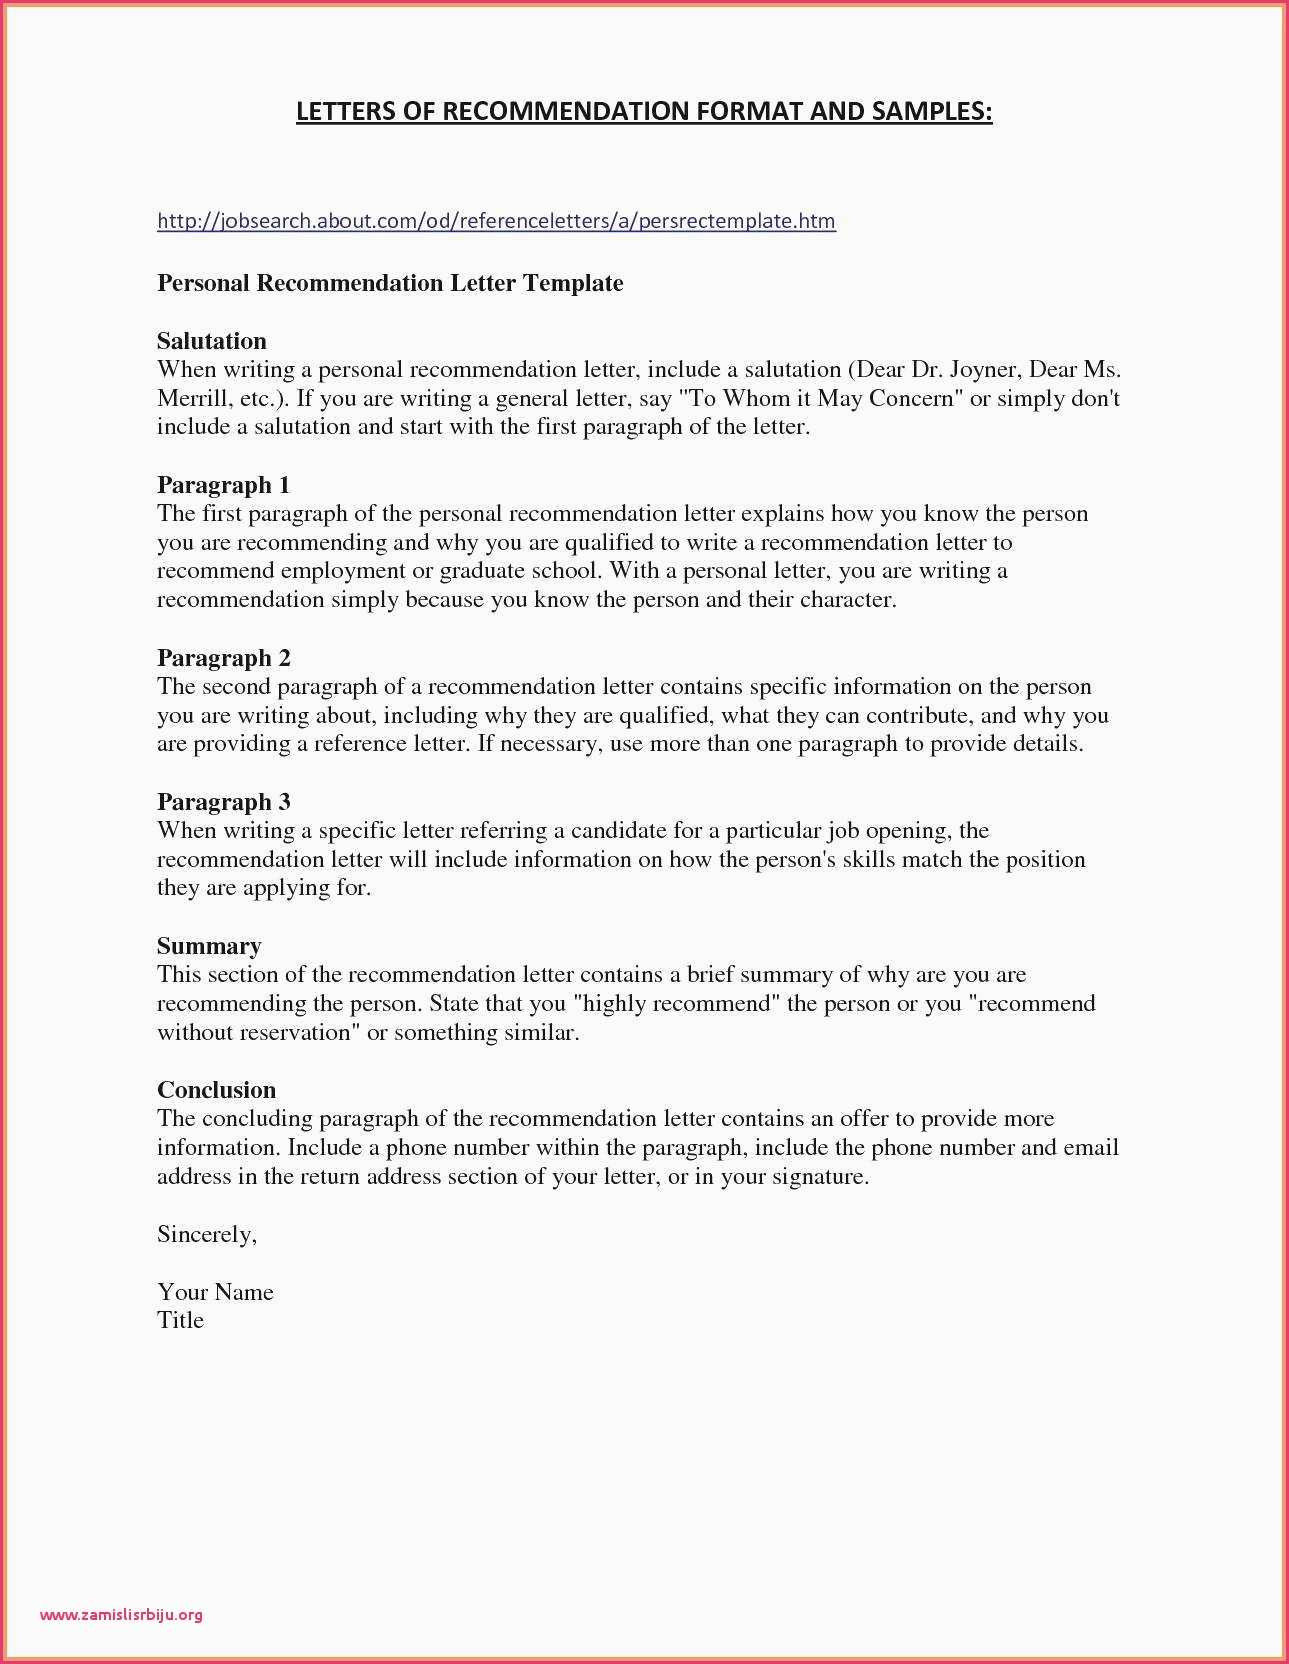 My Perfect Resume Phone Number - My Perfect Resume Cover Letter Elegant My Perfect Resume Phone